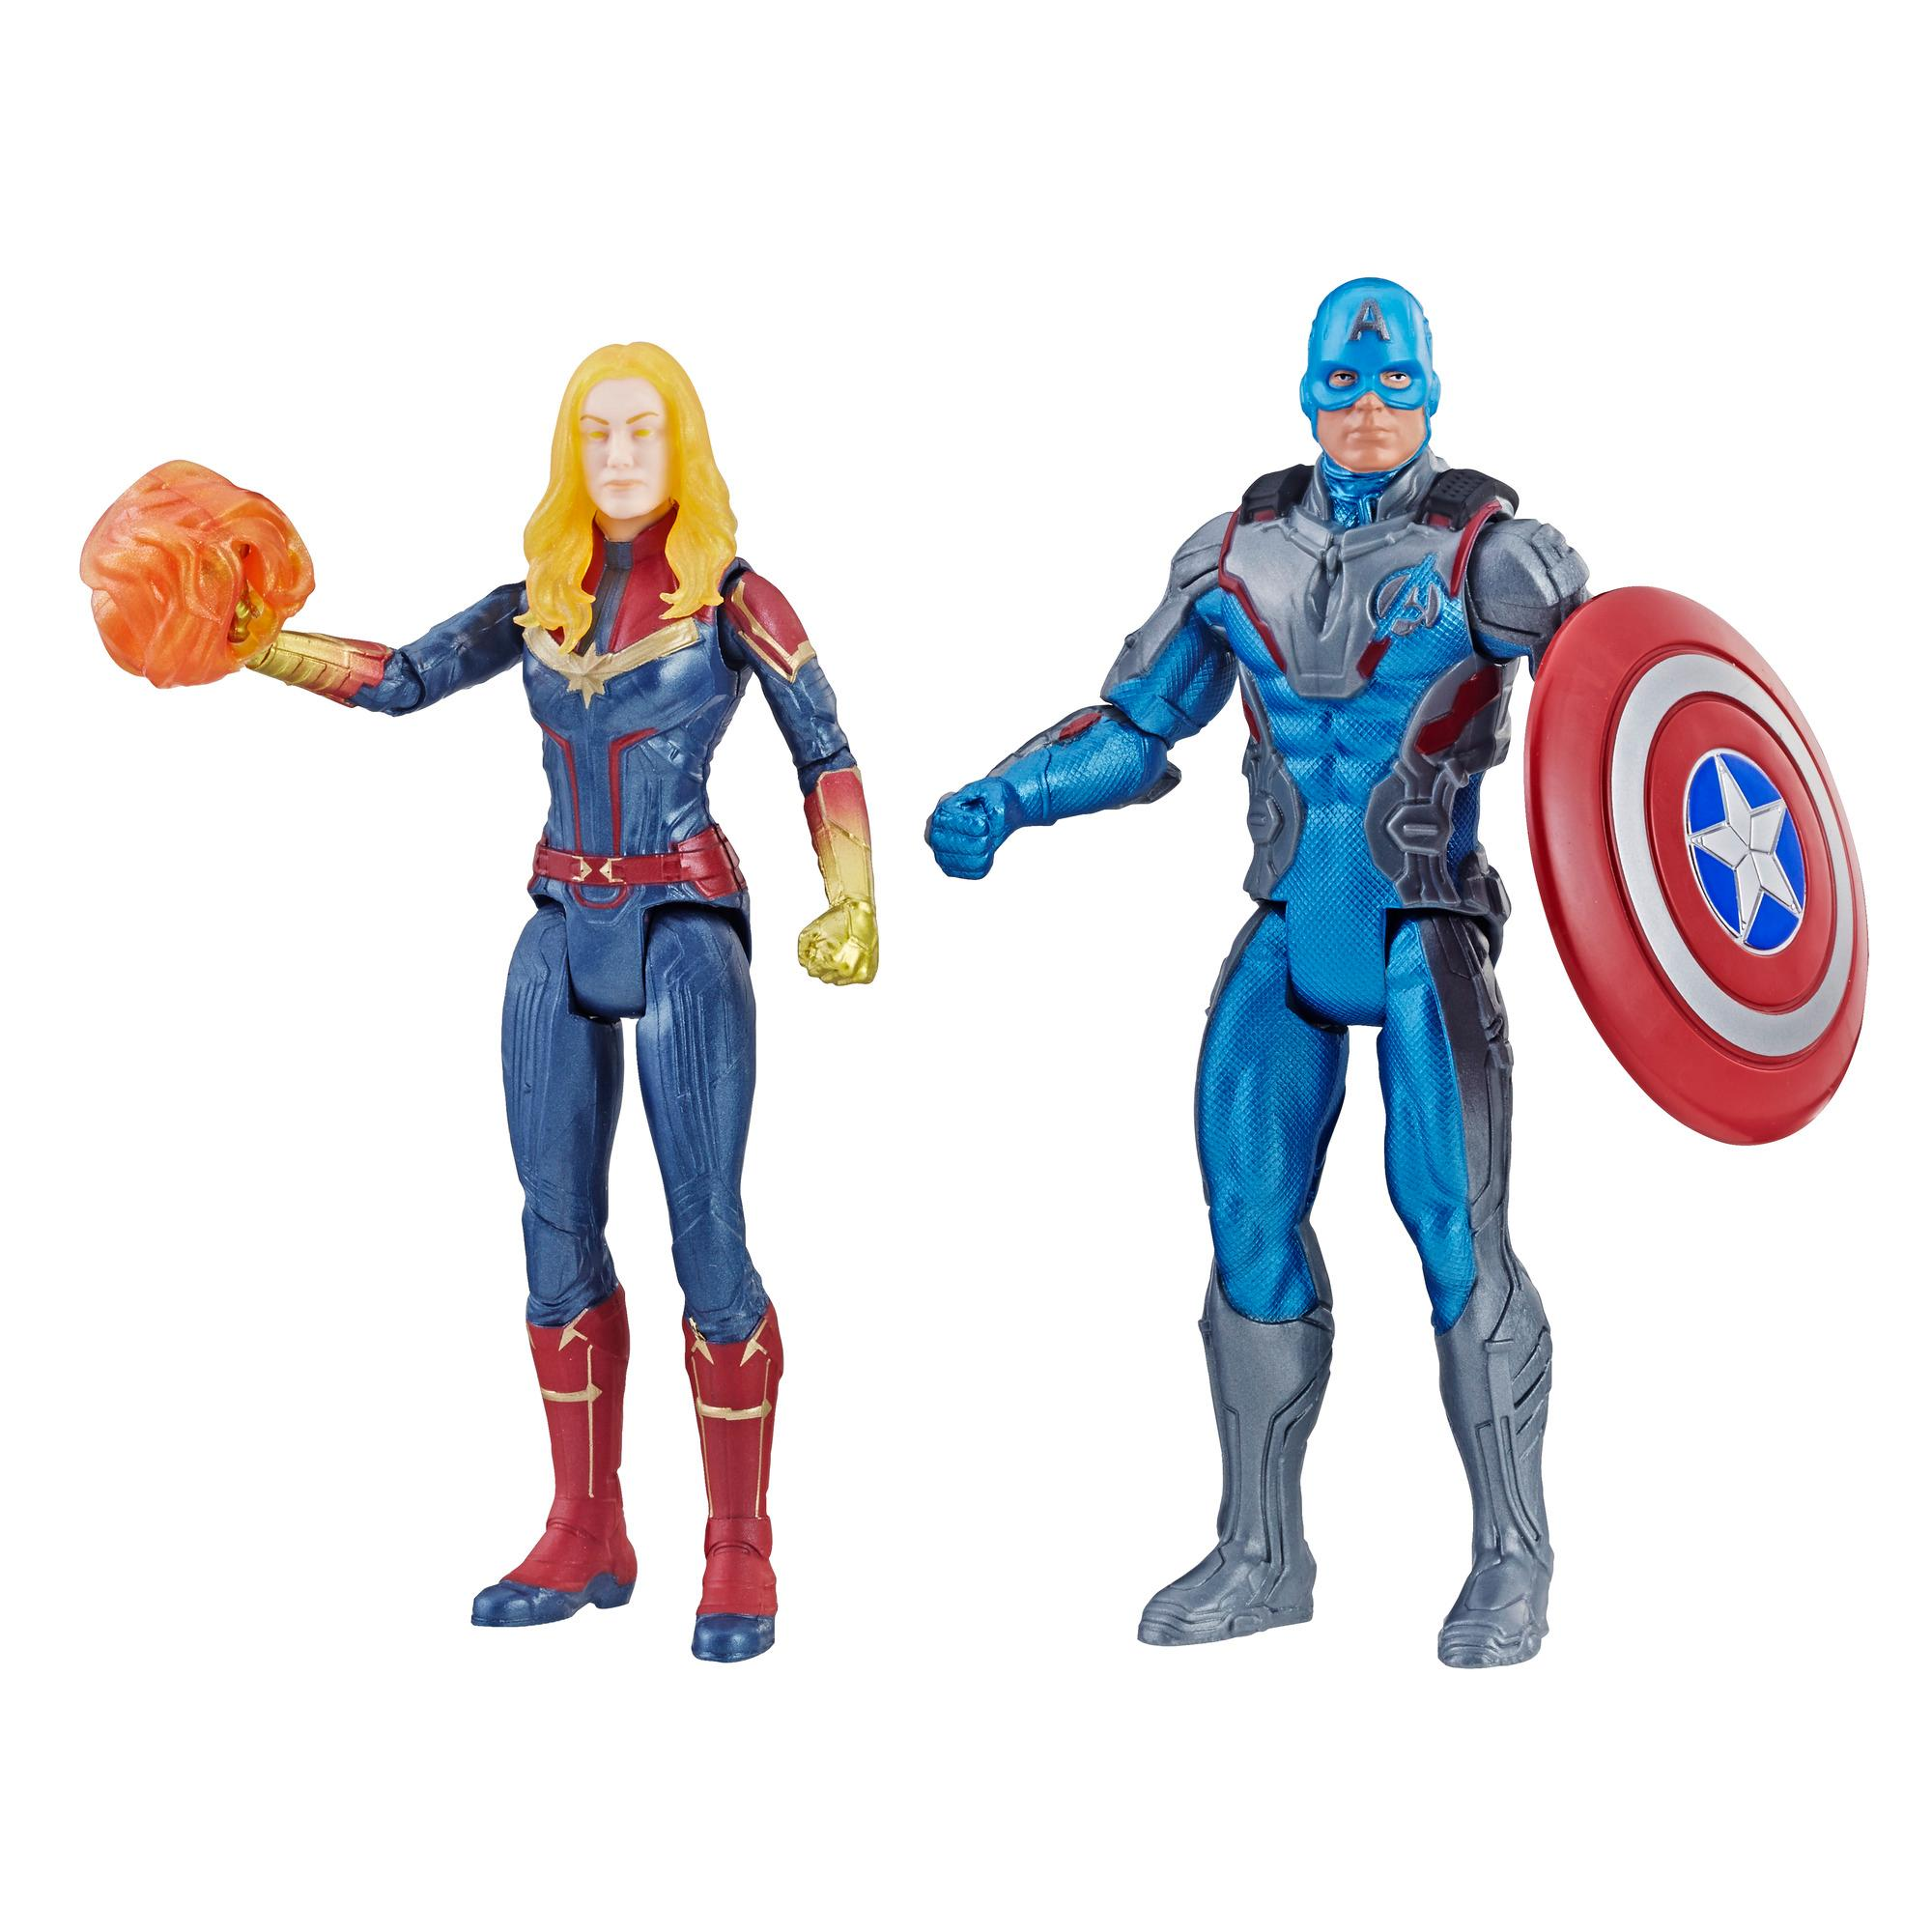 Marvel Avengers : Phase finale Duo de personnages Capitaine America et Capitaine Marvel